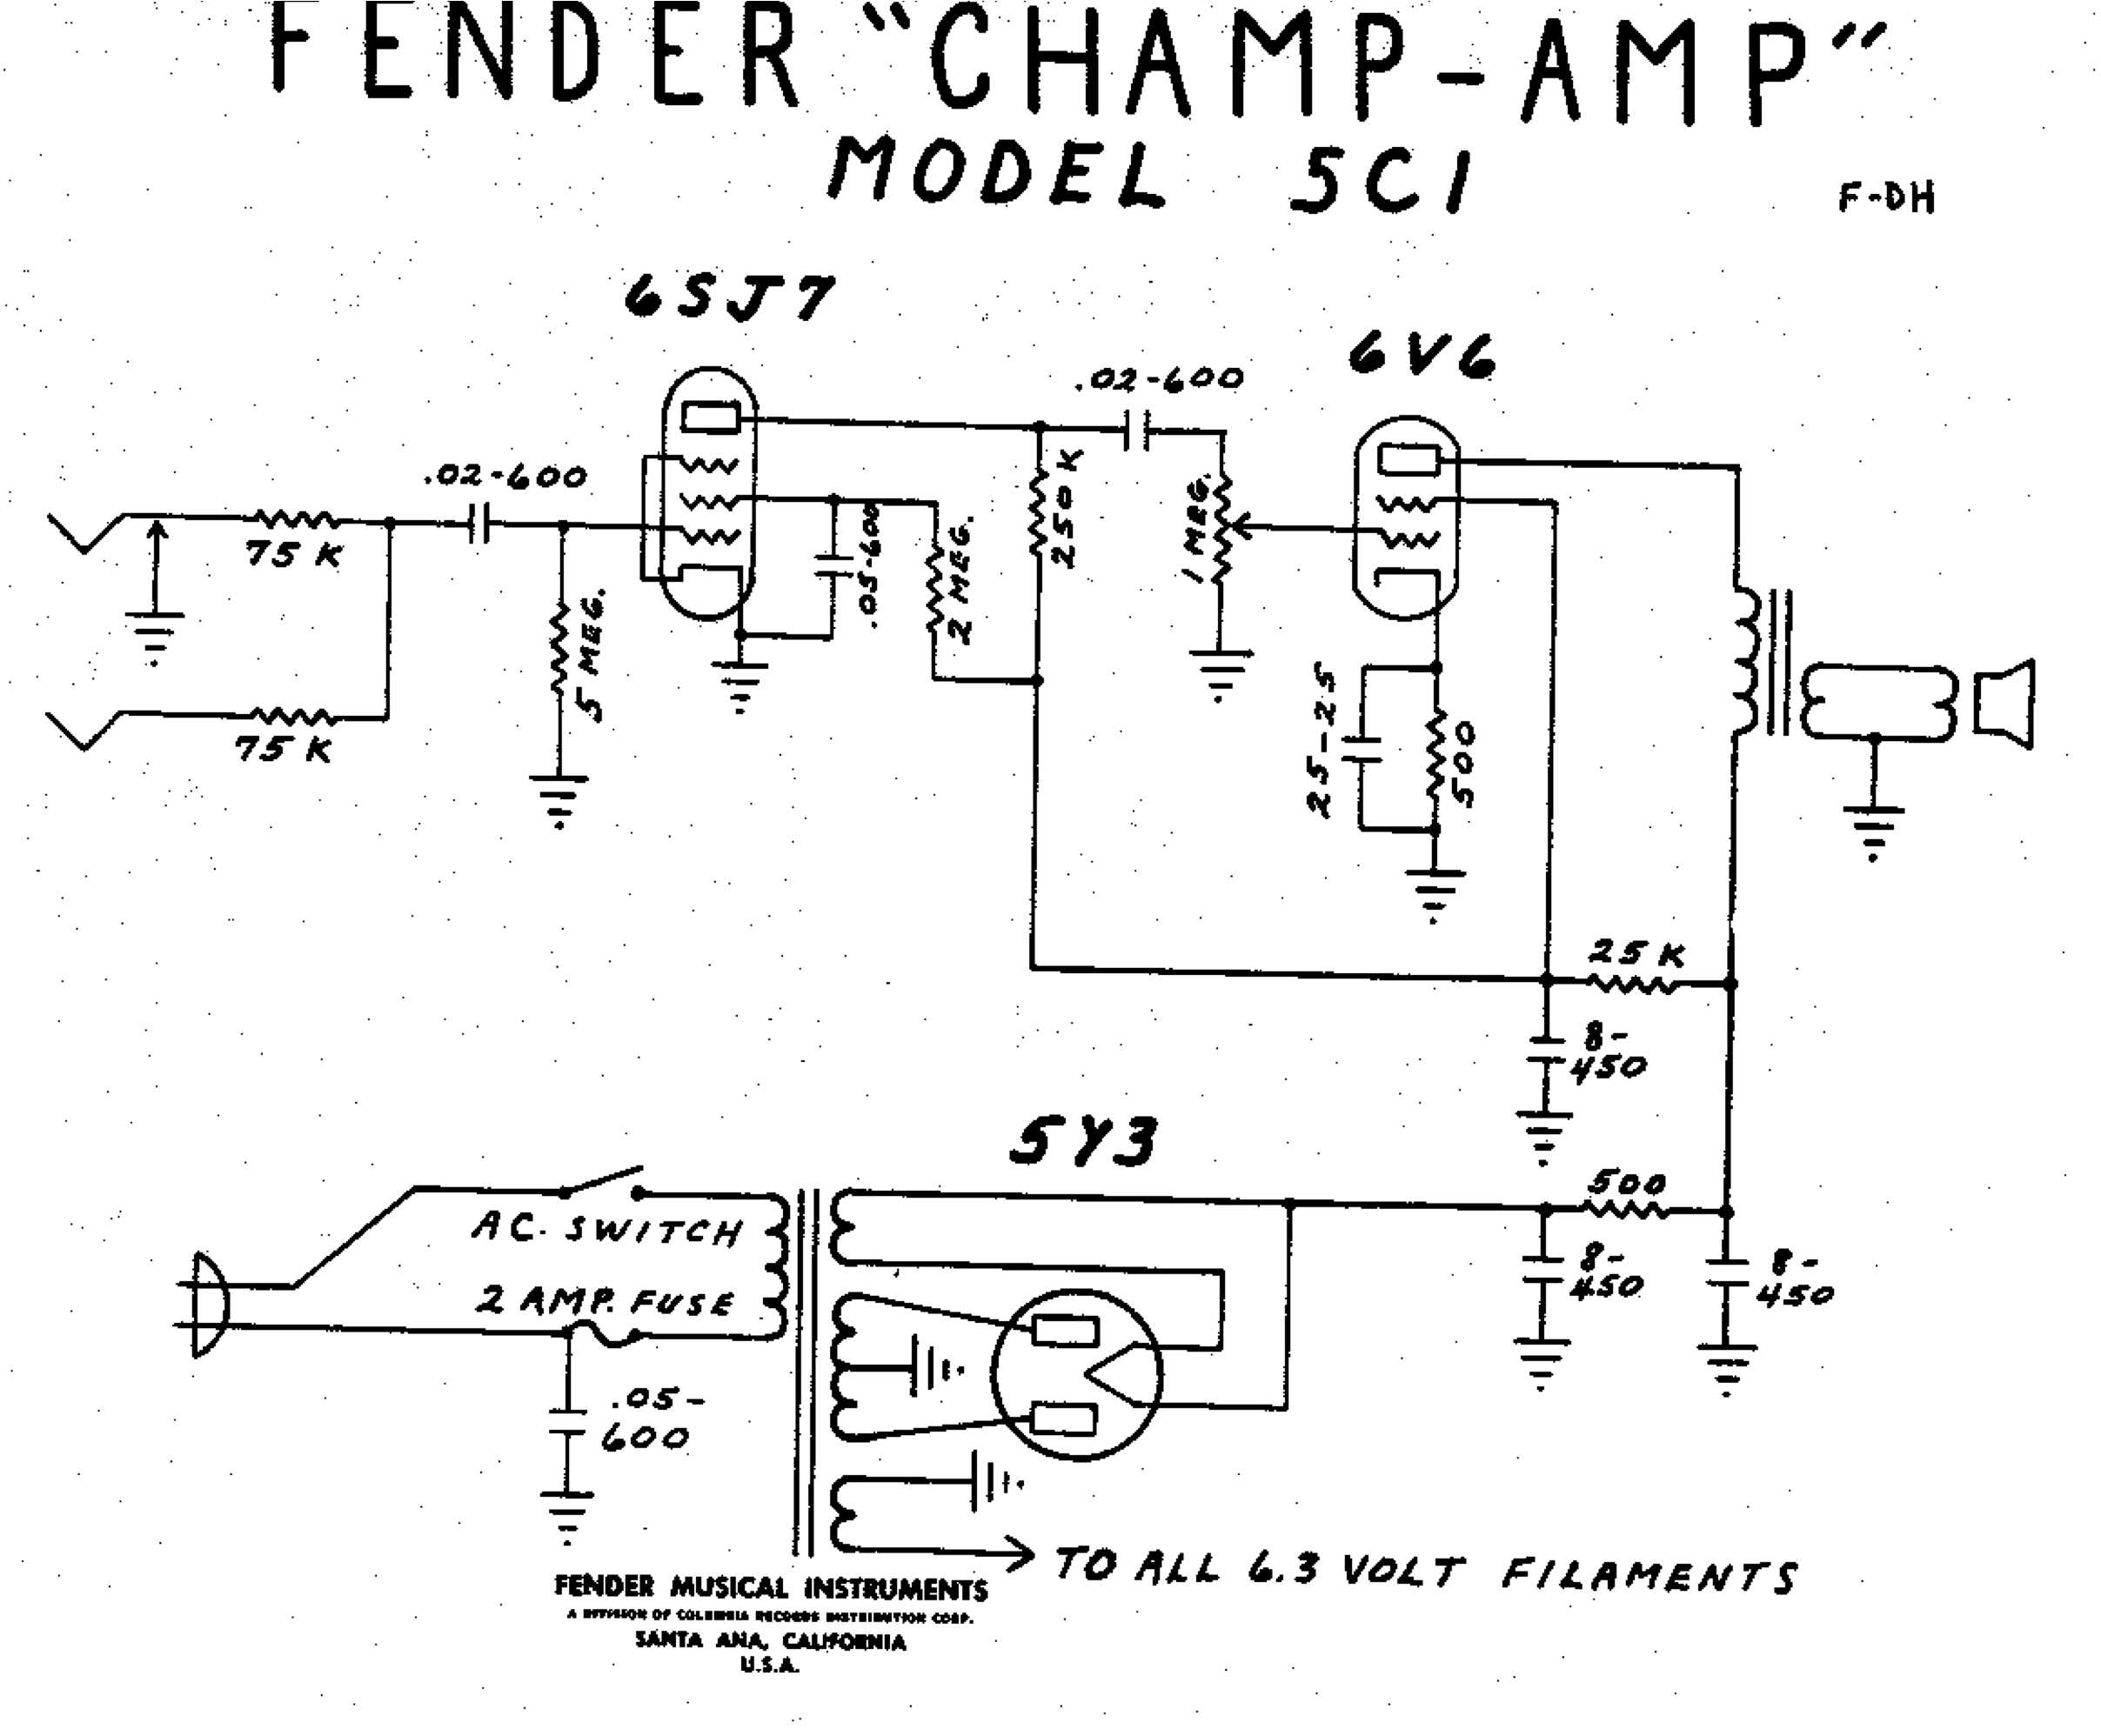 champ_5c1 fender champ 5c1 wiring diagram my fender champ vintage amps champion wiring diagram at gsmx.co